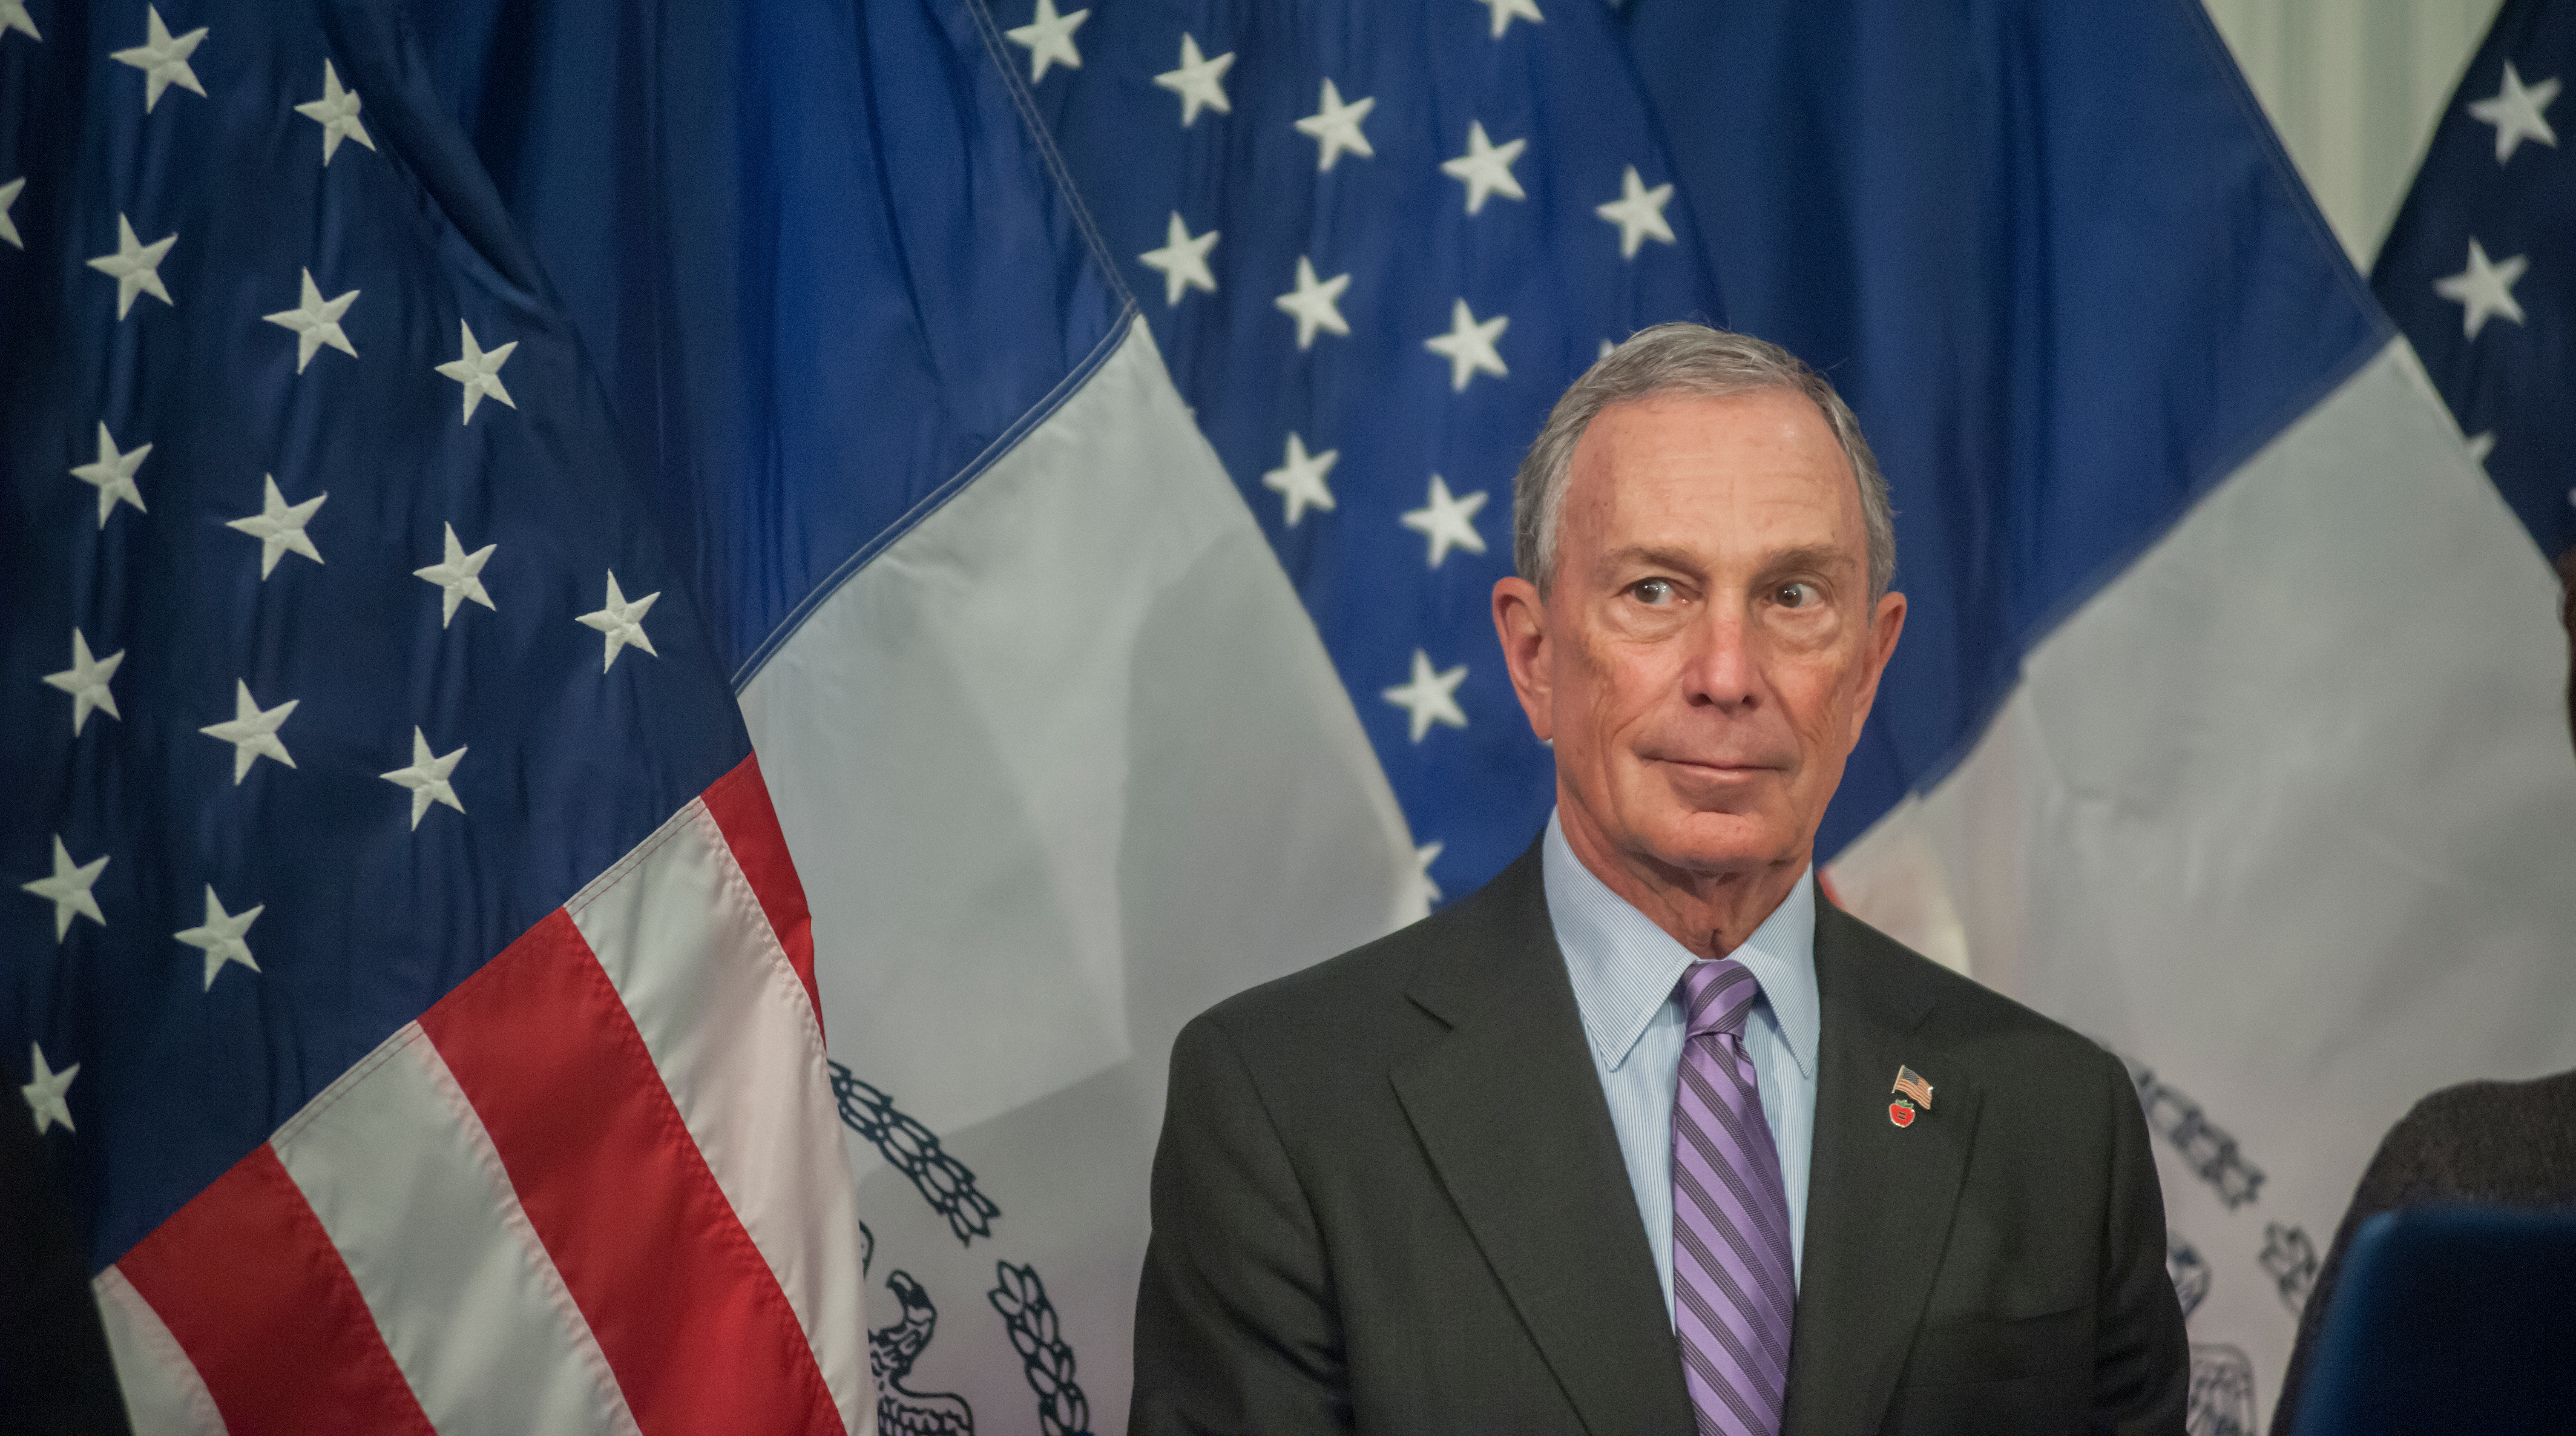 Mike Bloomberg supports gun reform even though he also supports the Second Amendment.